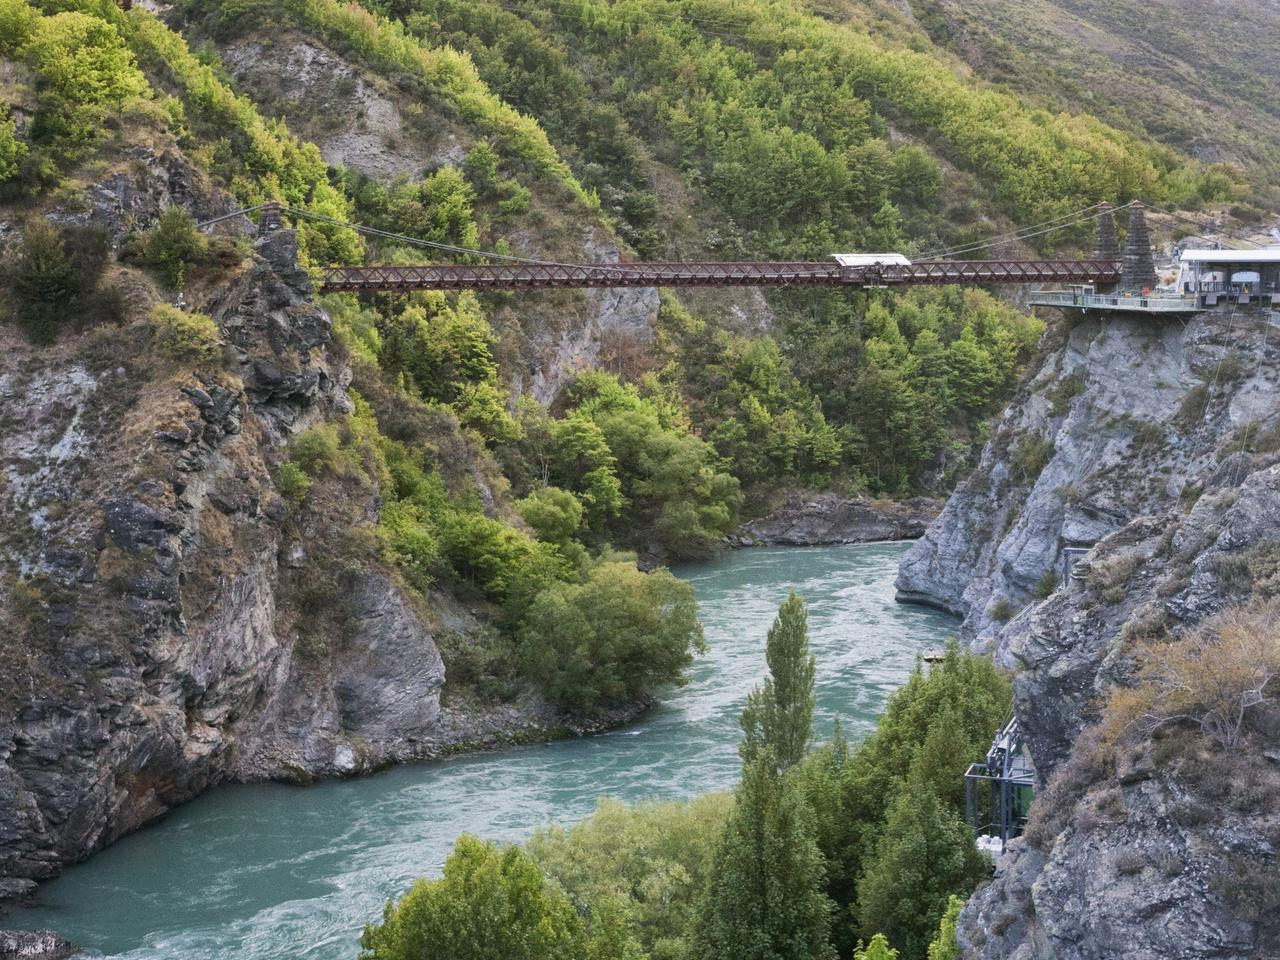 World's First Commercial Bungee Jumping Site near Queenstown, New Zealand